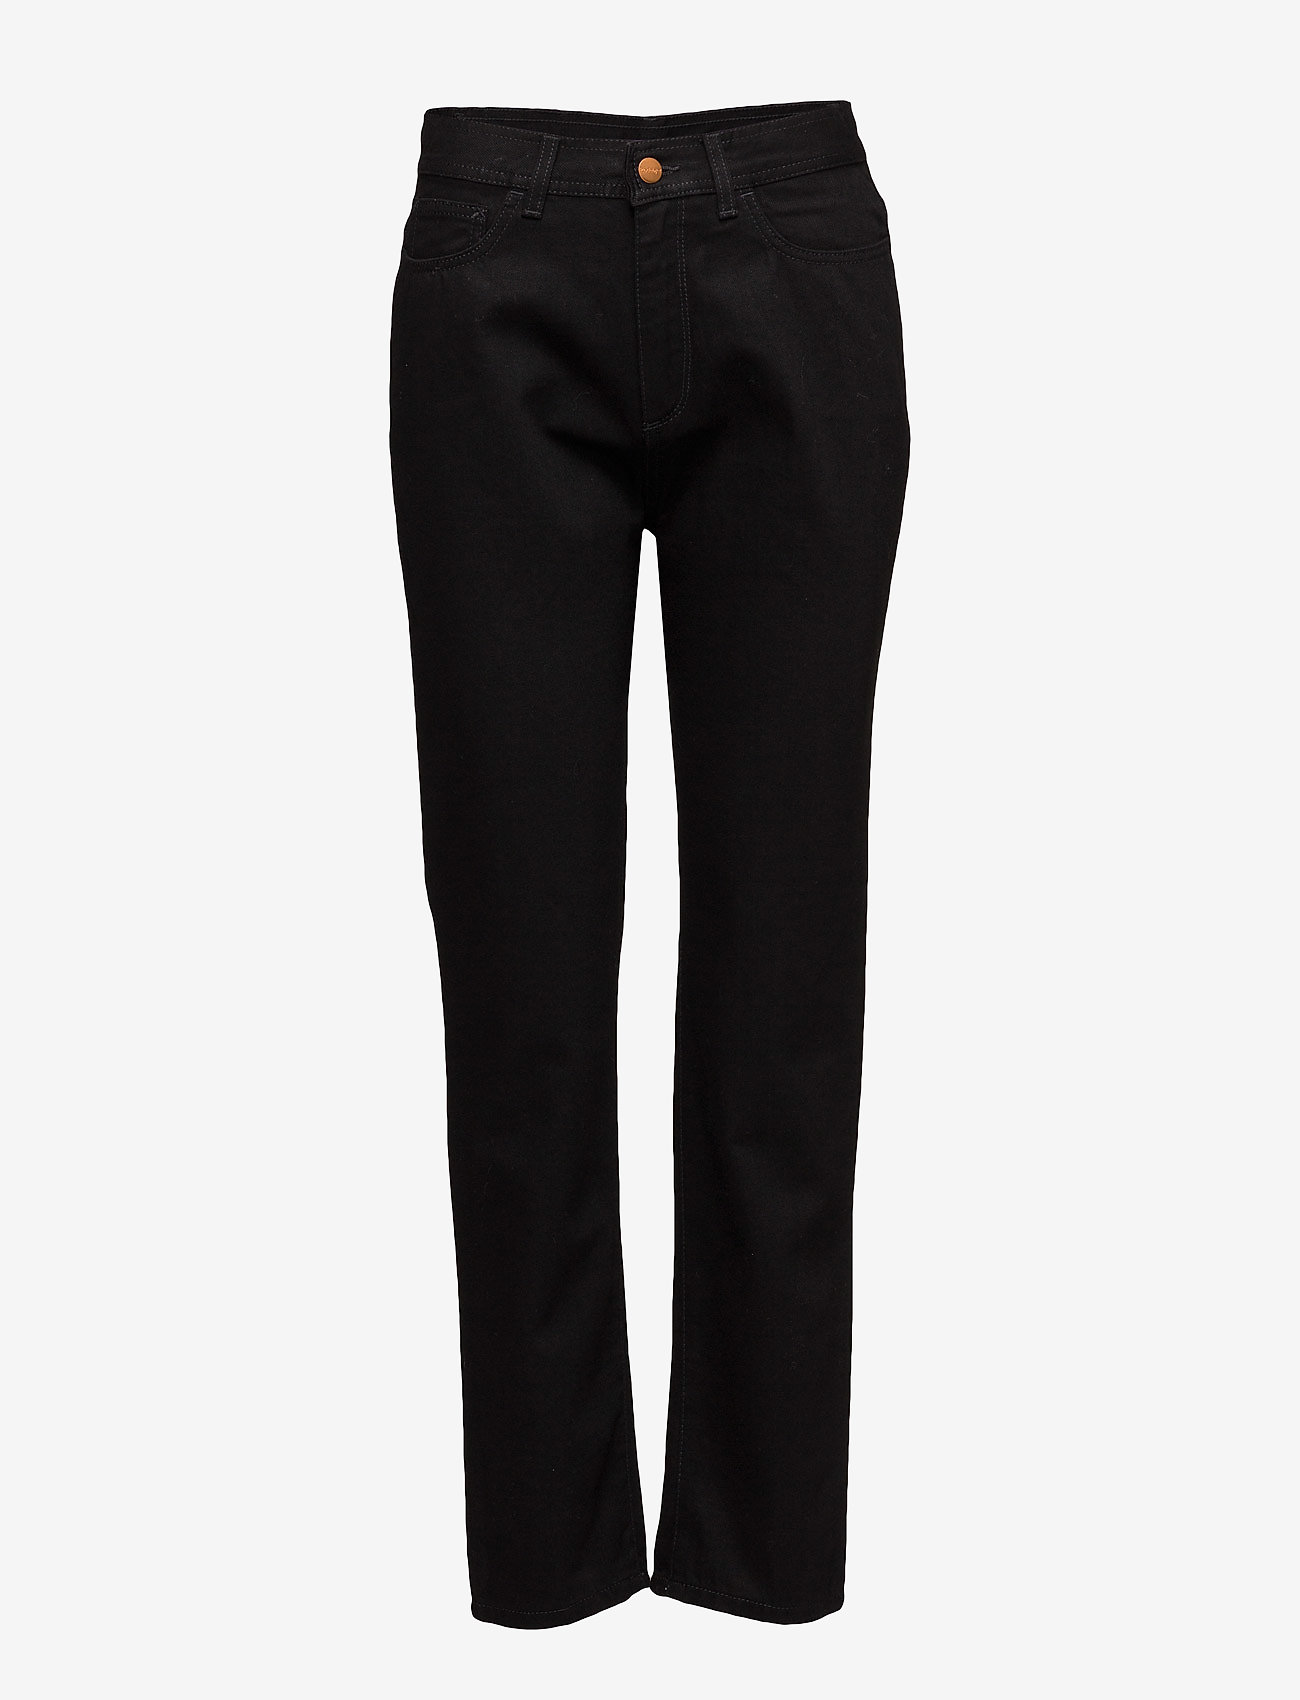 RODEBJER - SUSAN - straight jeans - black - 0